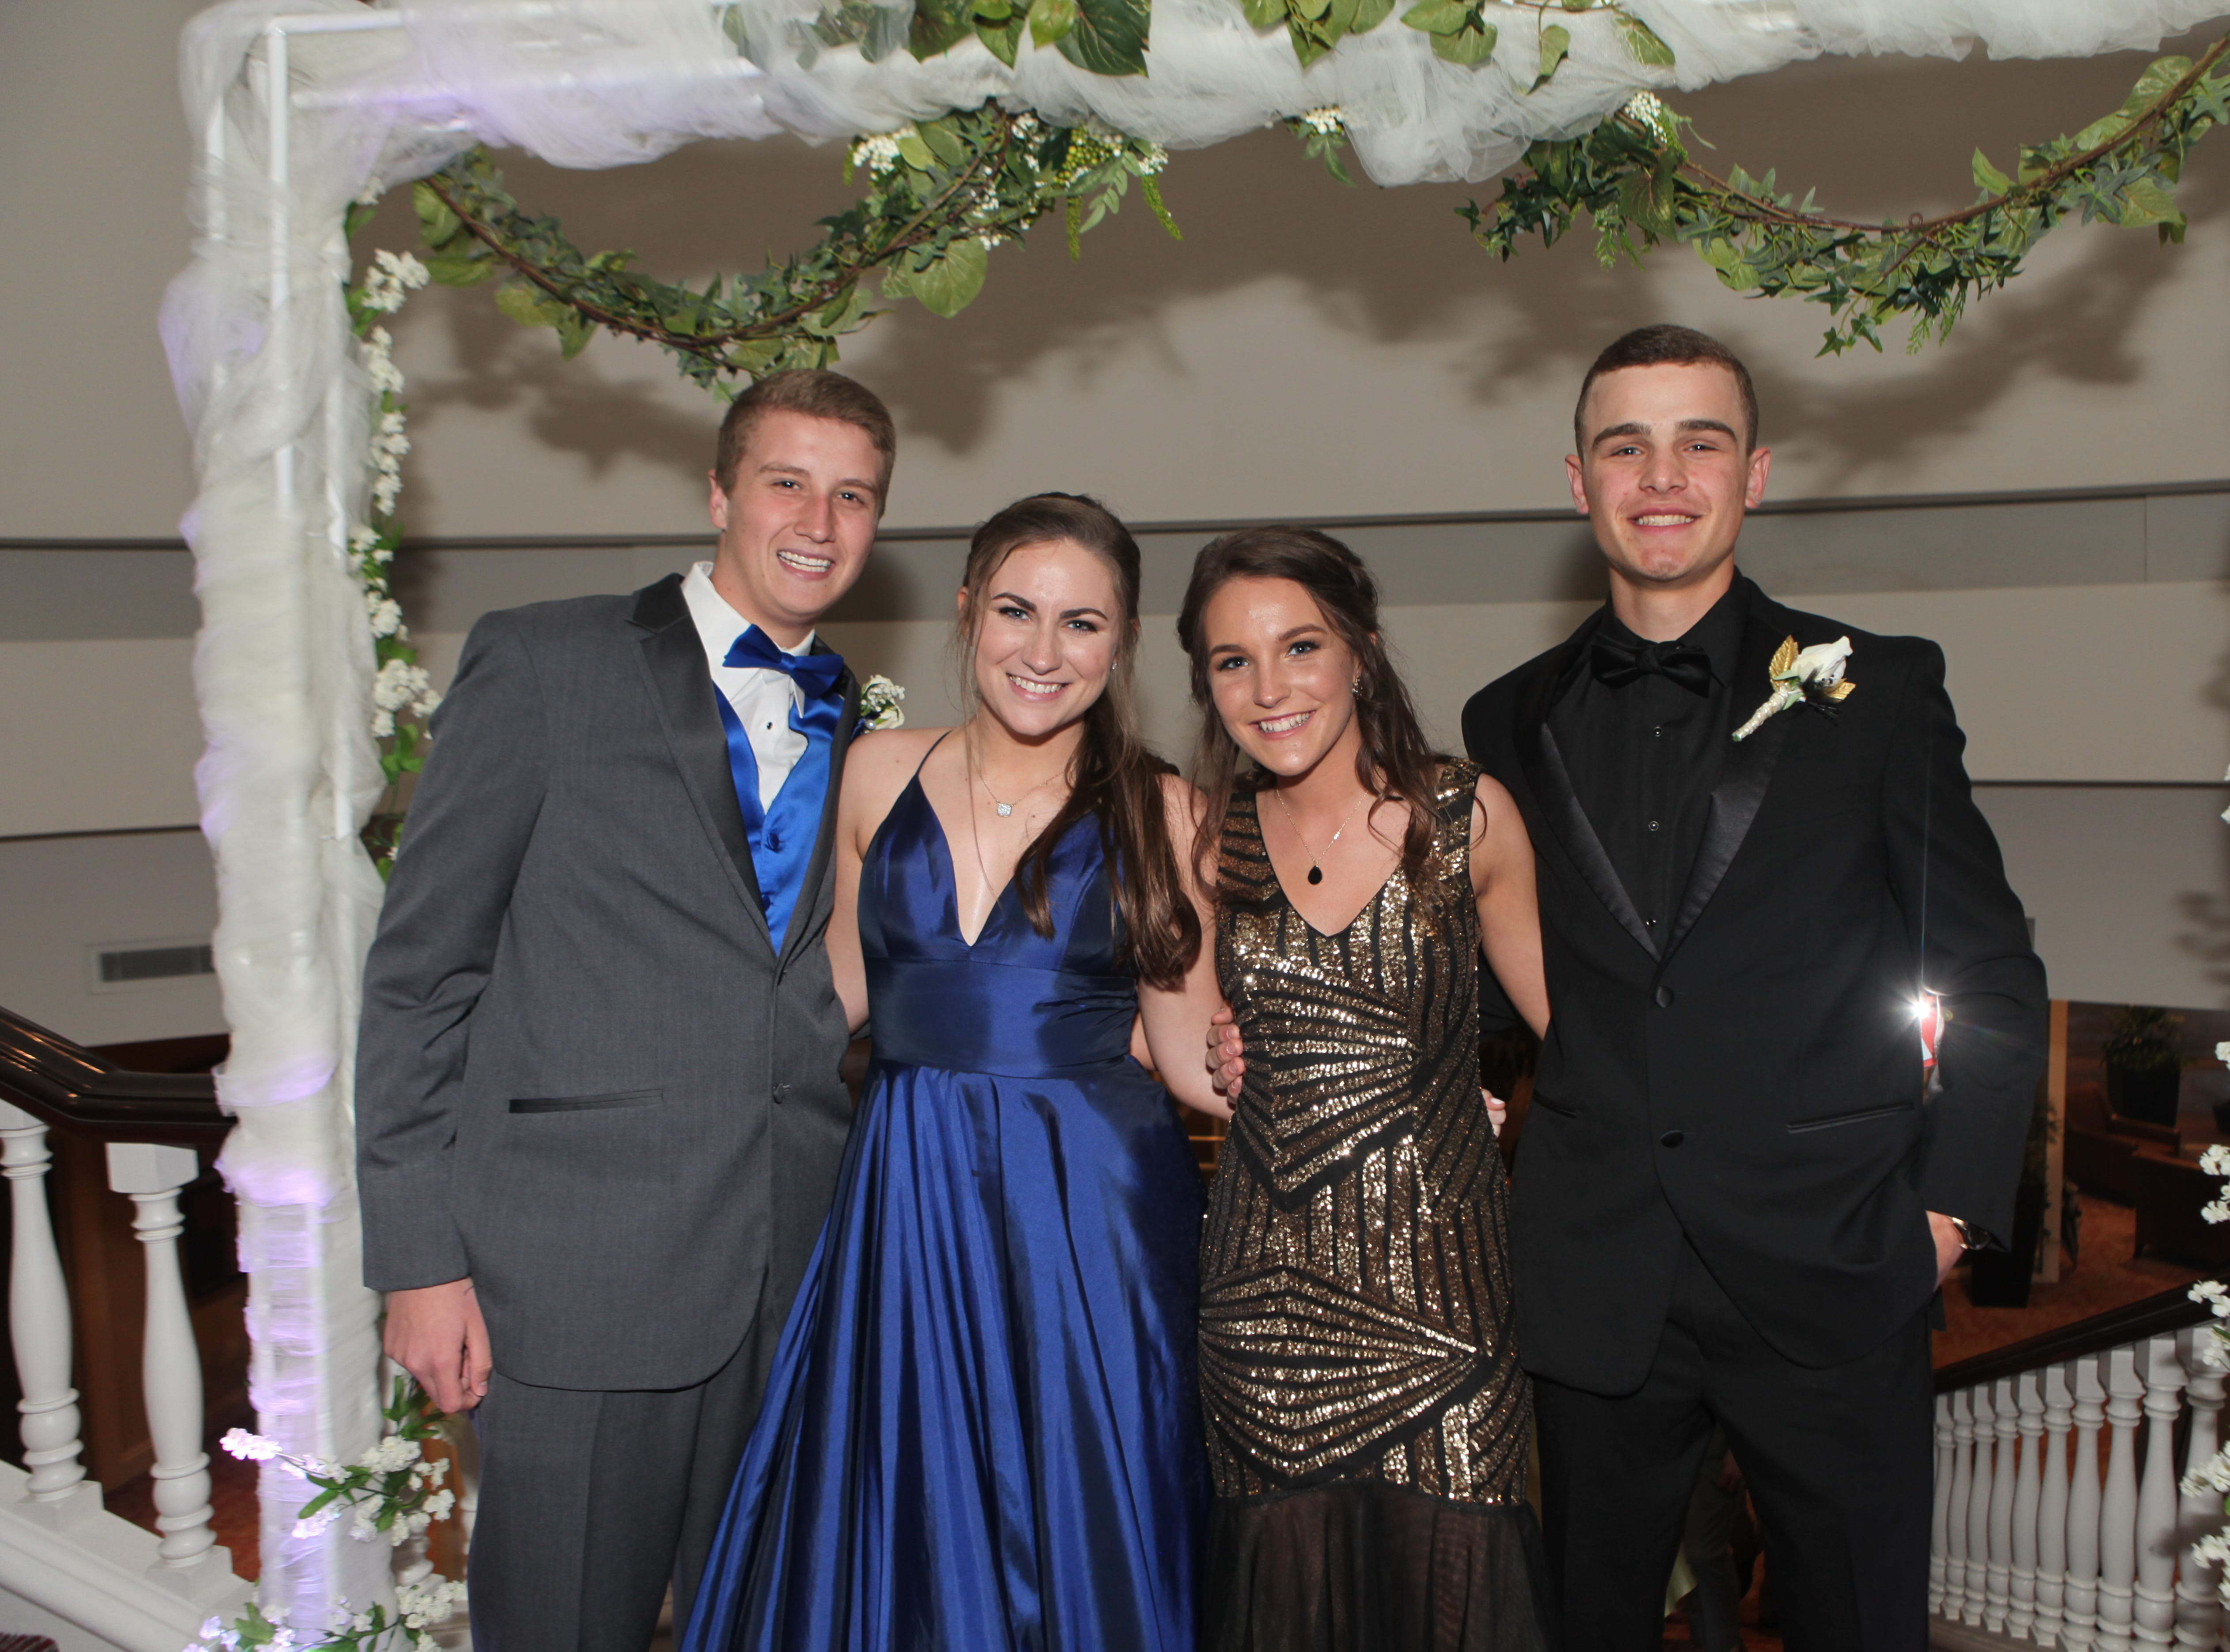 Sycamore High School's Prom was held Saturday, May 11, 2019 at Gaylord Springs Golf Links Clubhouse.